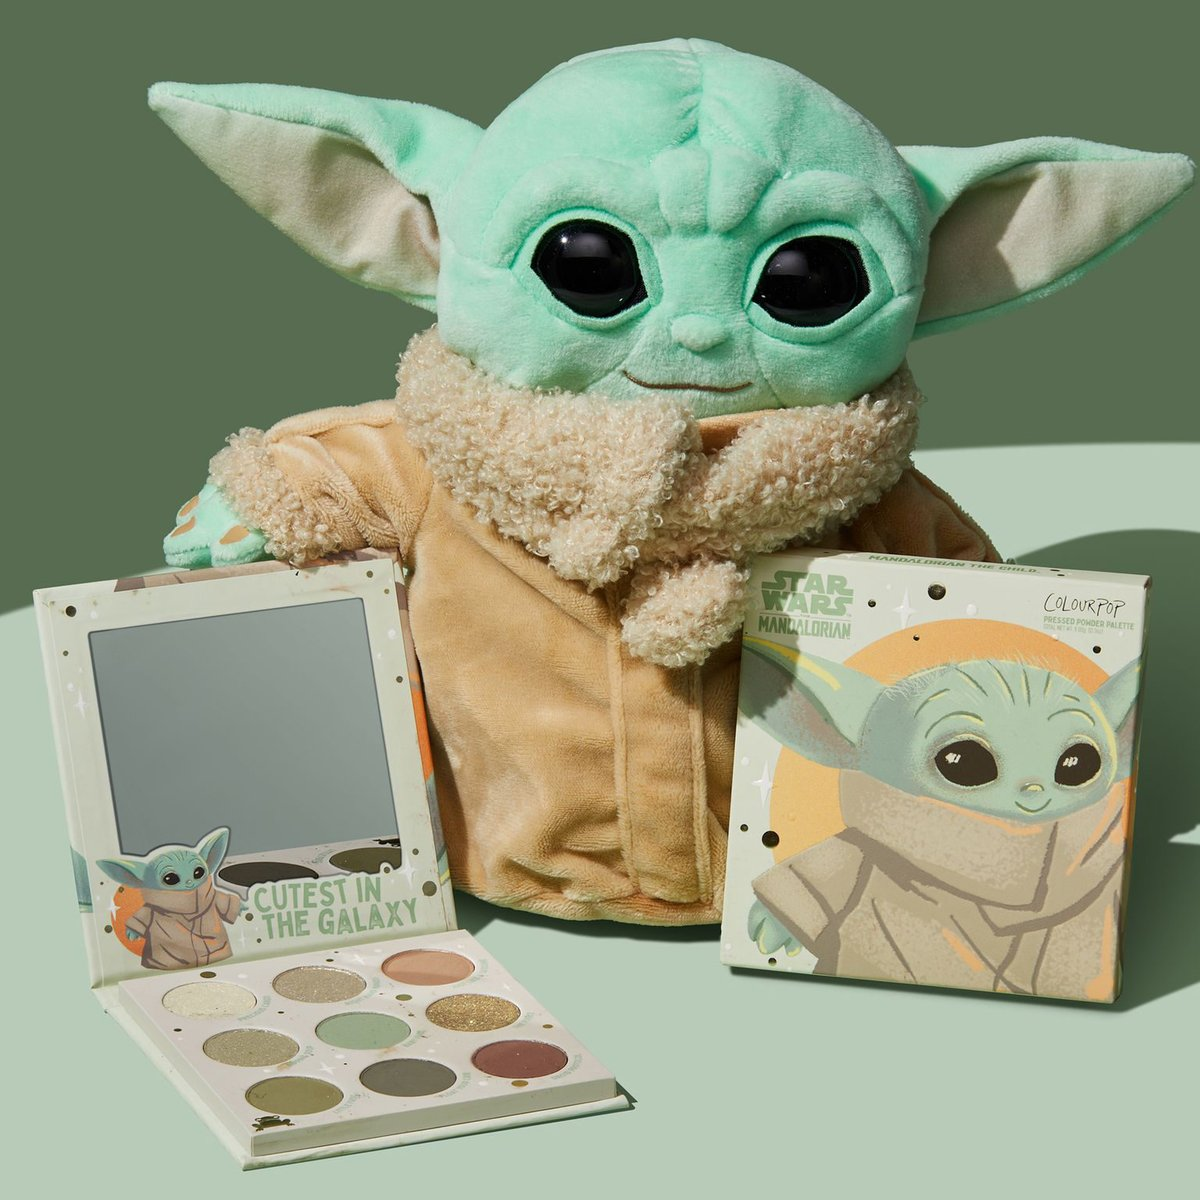 💚#GIVEAWAY 💚  The Child, affectionately referred to as Baby Yoda, has stolen our 💚's! We are giving away 5 of 'The Child' palettes + 'The Child' @Mattel  Plushes!  To Enter: 💚Like & RT 💚Follow @ColourPopCo  This collaboration launches on October 29th at 10AM PST!